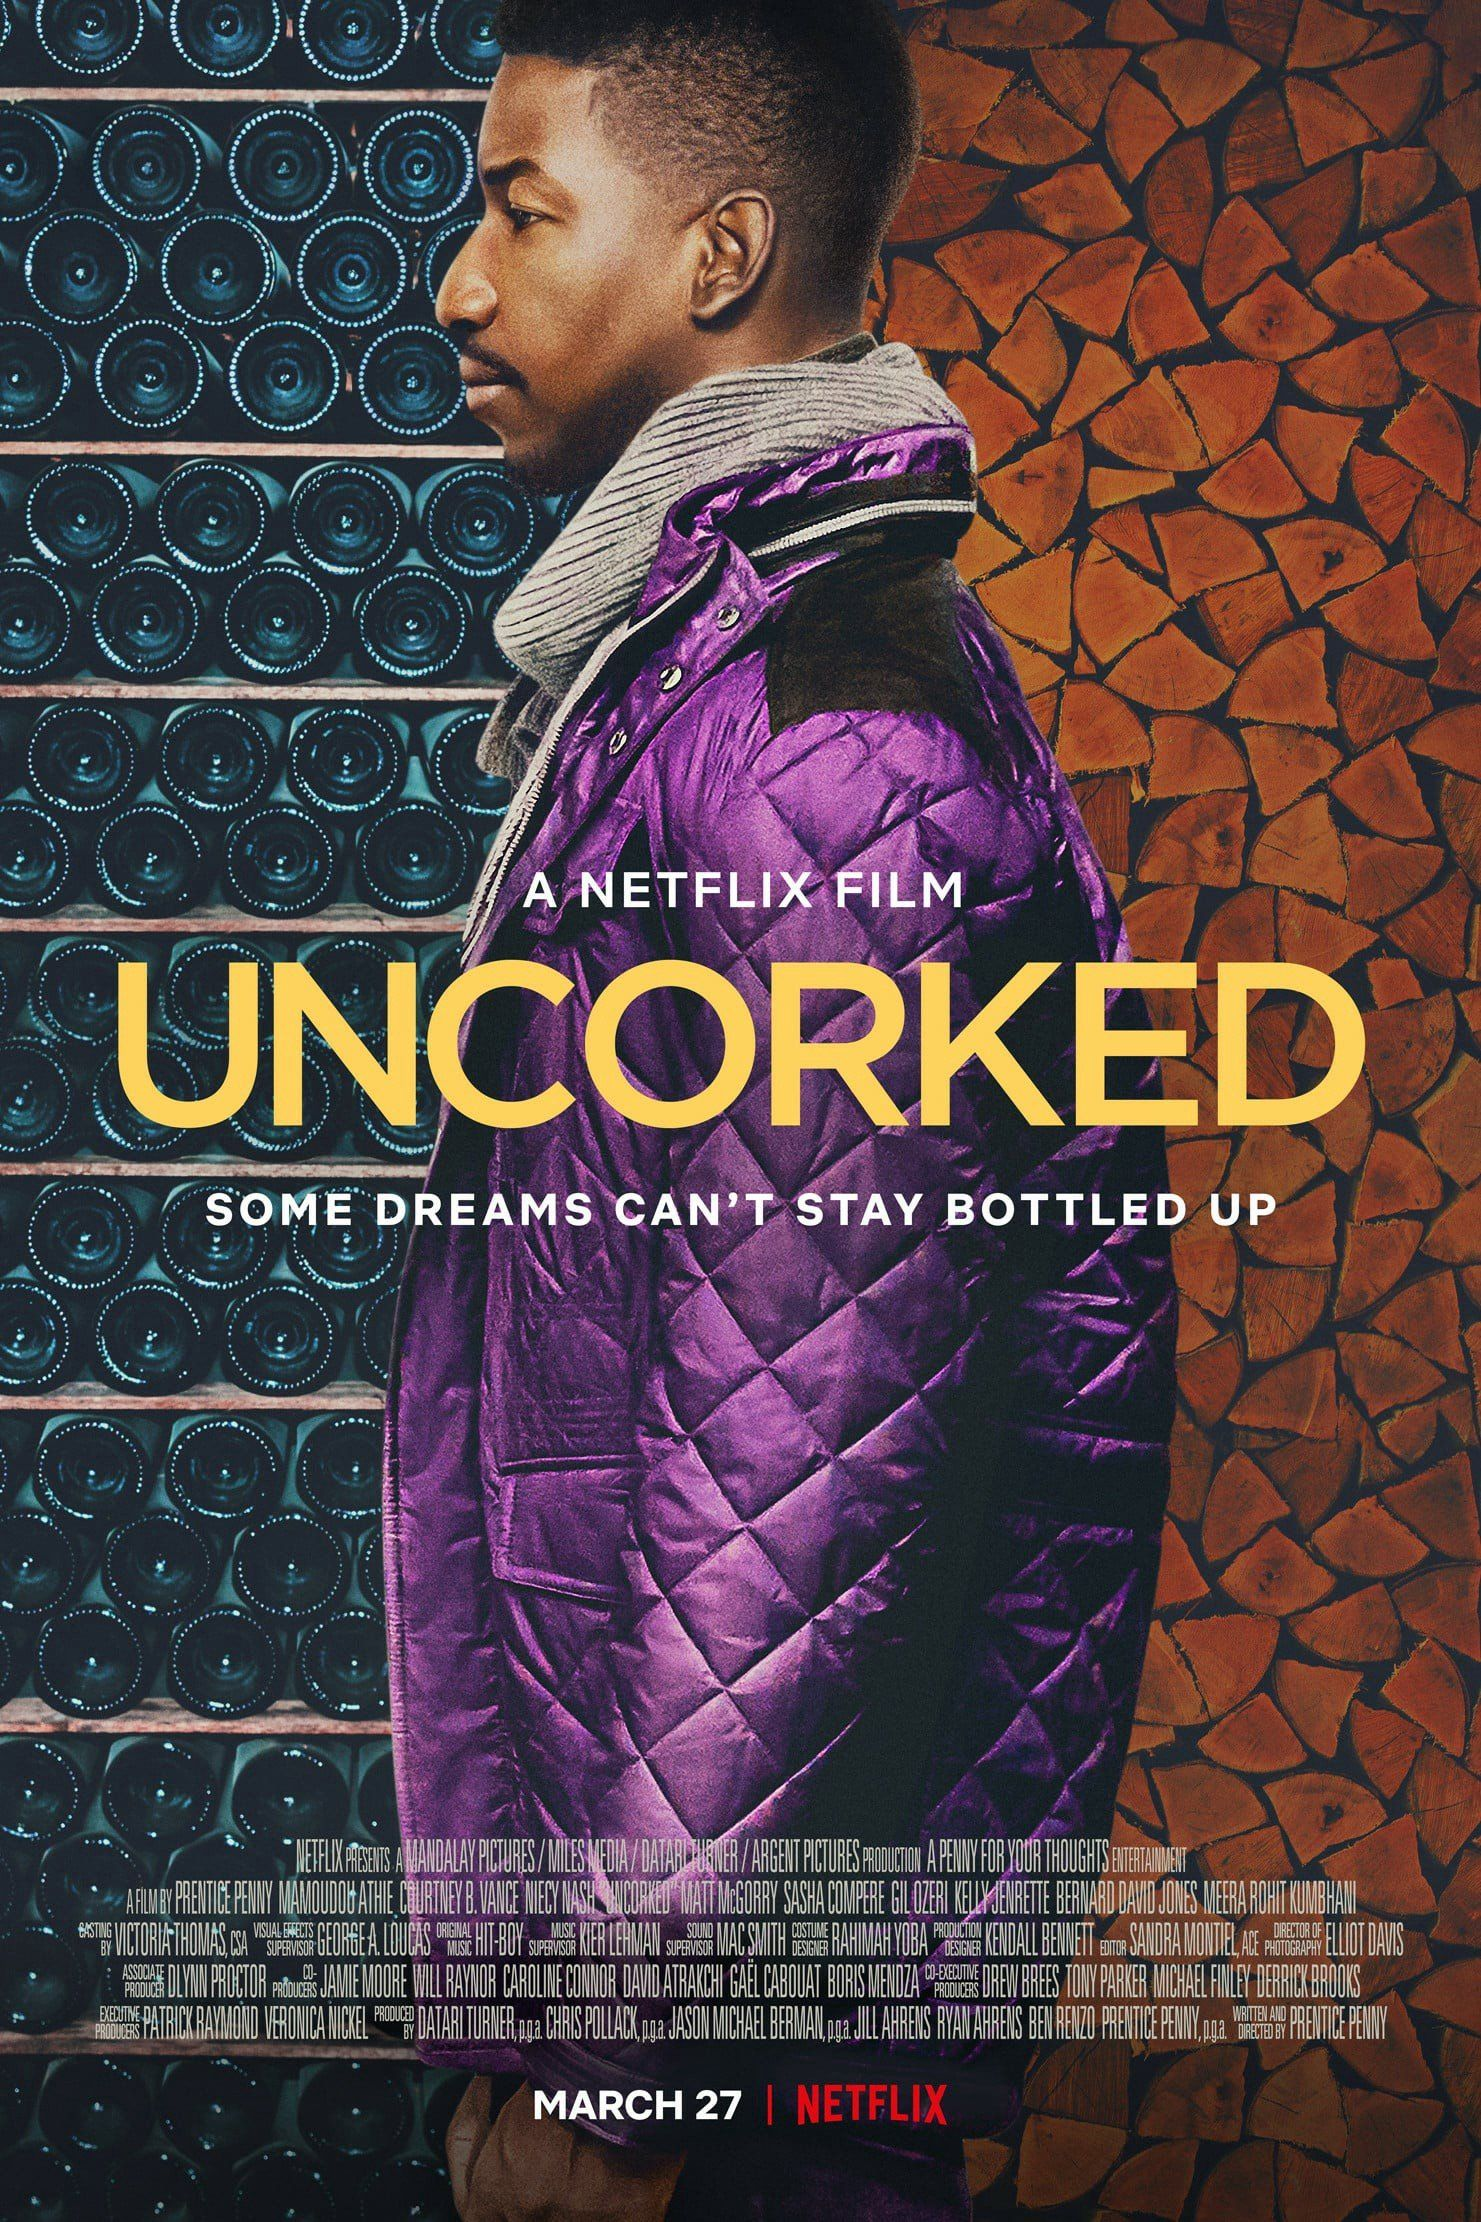 Film Review Take a Sip of Netflix's 'Uncorked' in 2020